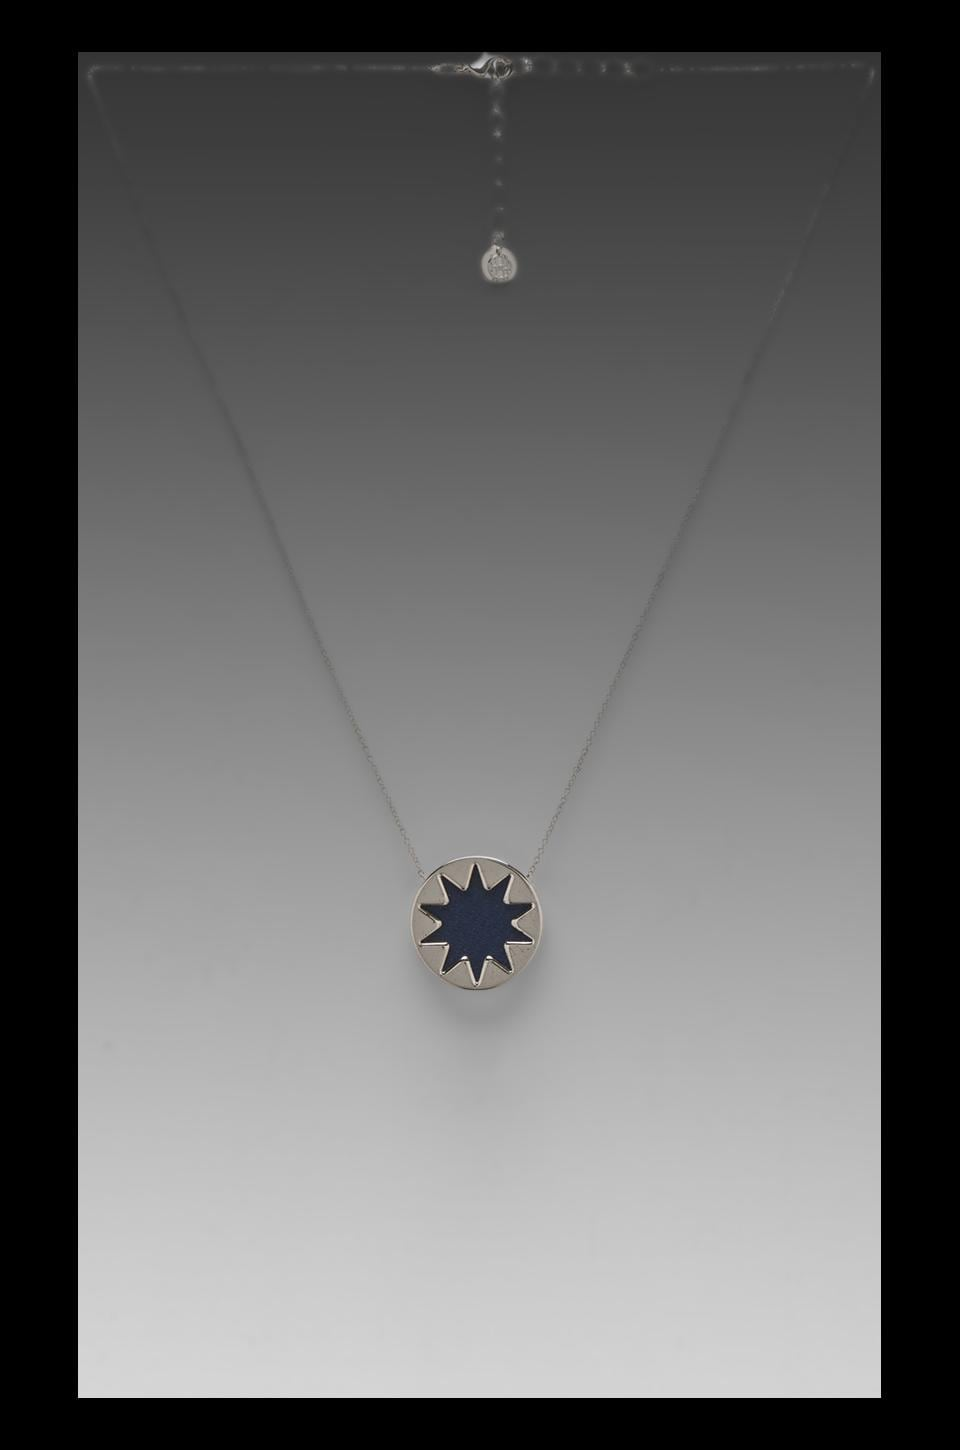 House of Harlow 1960 House of Harlow Mini Sunburst Pendant Necklace Leather in Silver Tone Navy